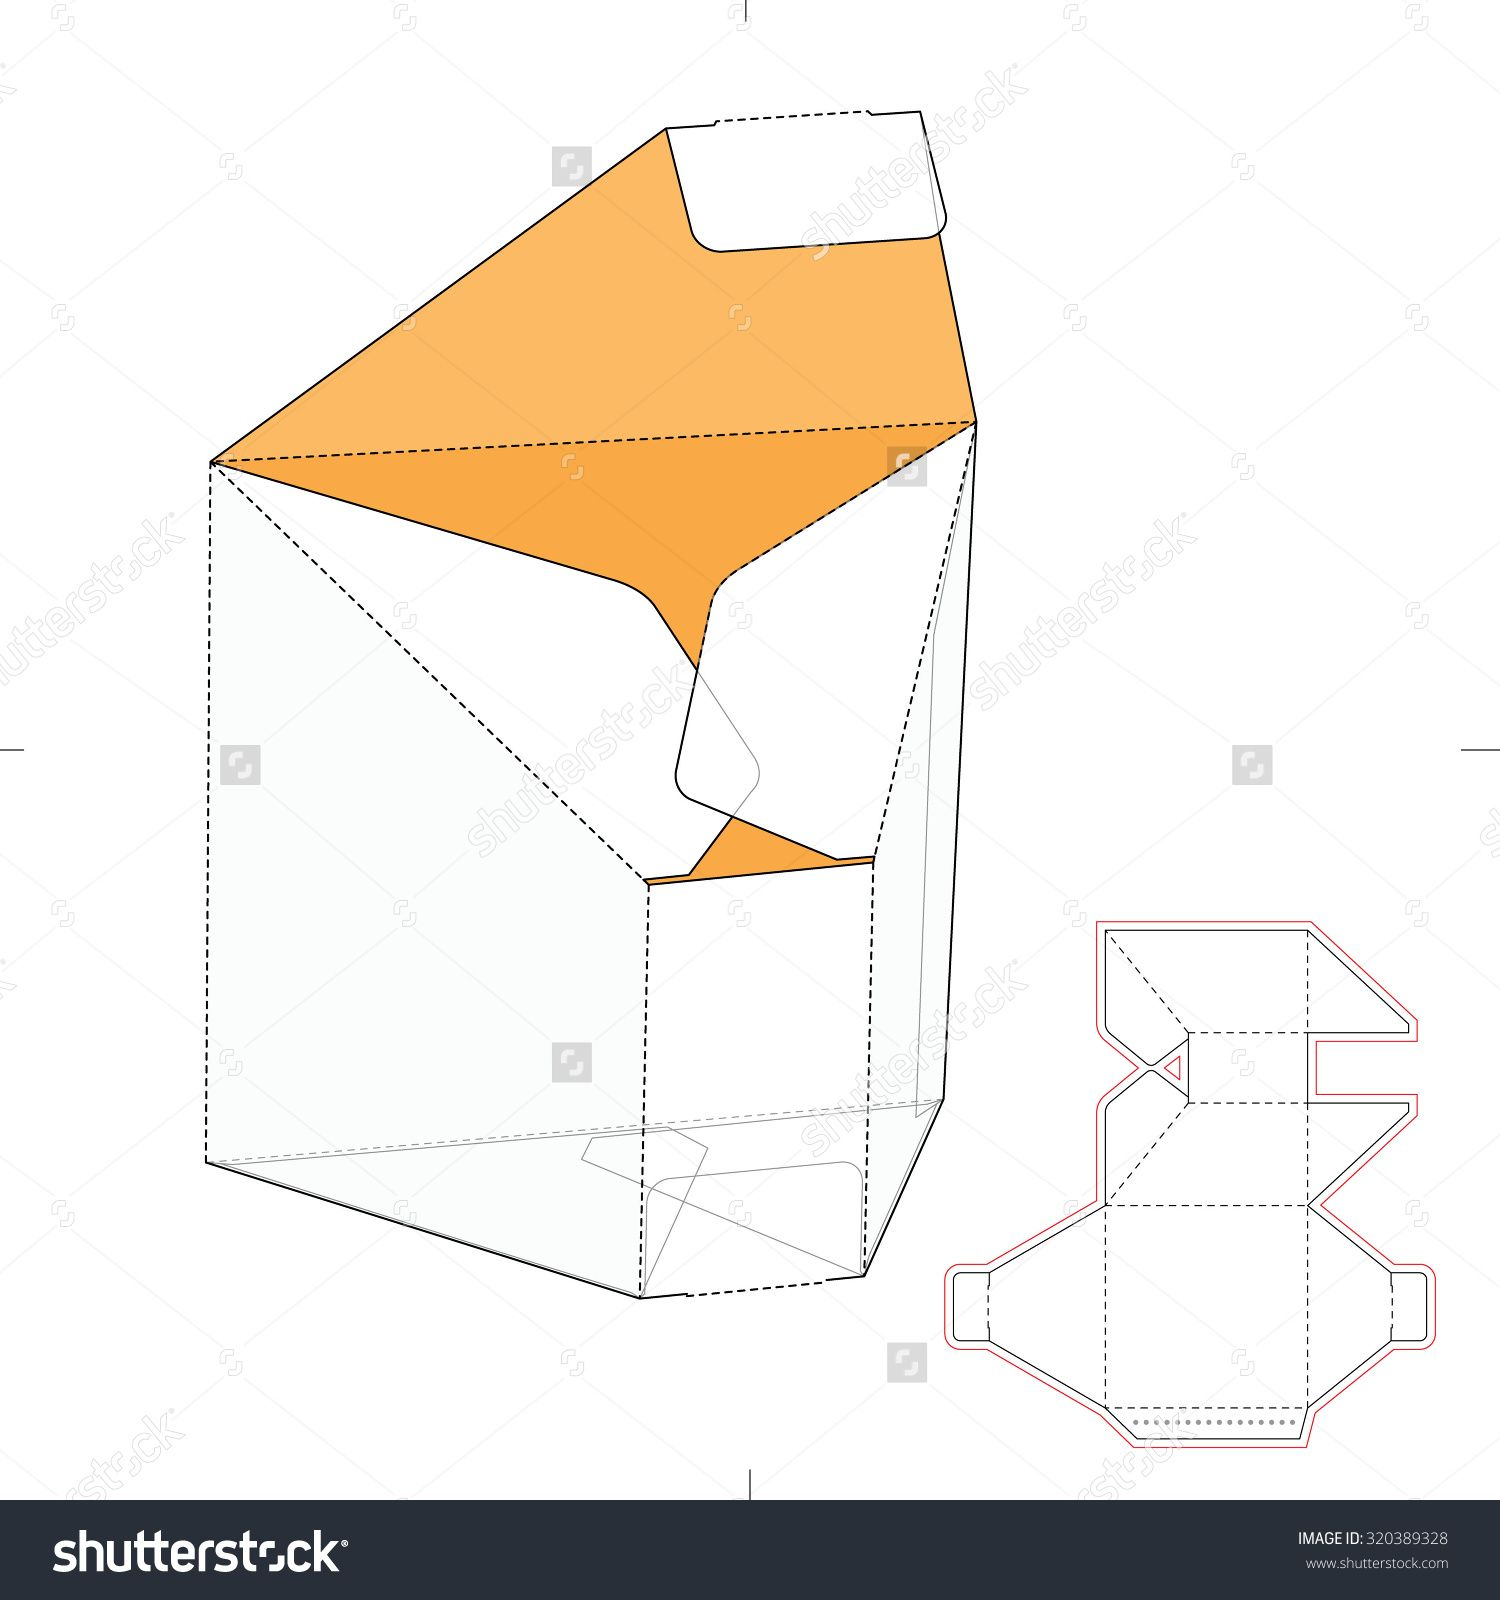 Tapered Prism Box With Die Cut Template Stock Vector Illustration 320389328 : Shutterstock